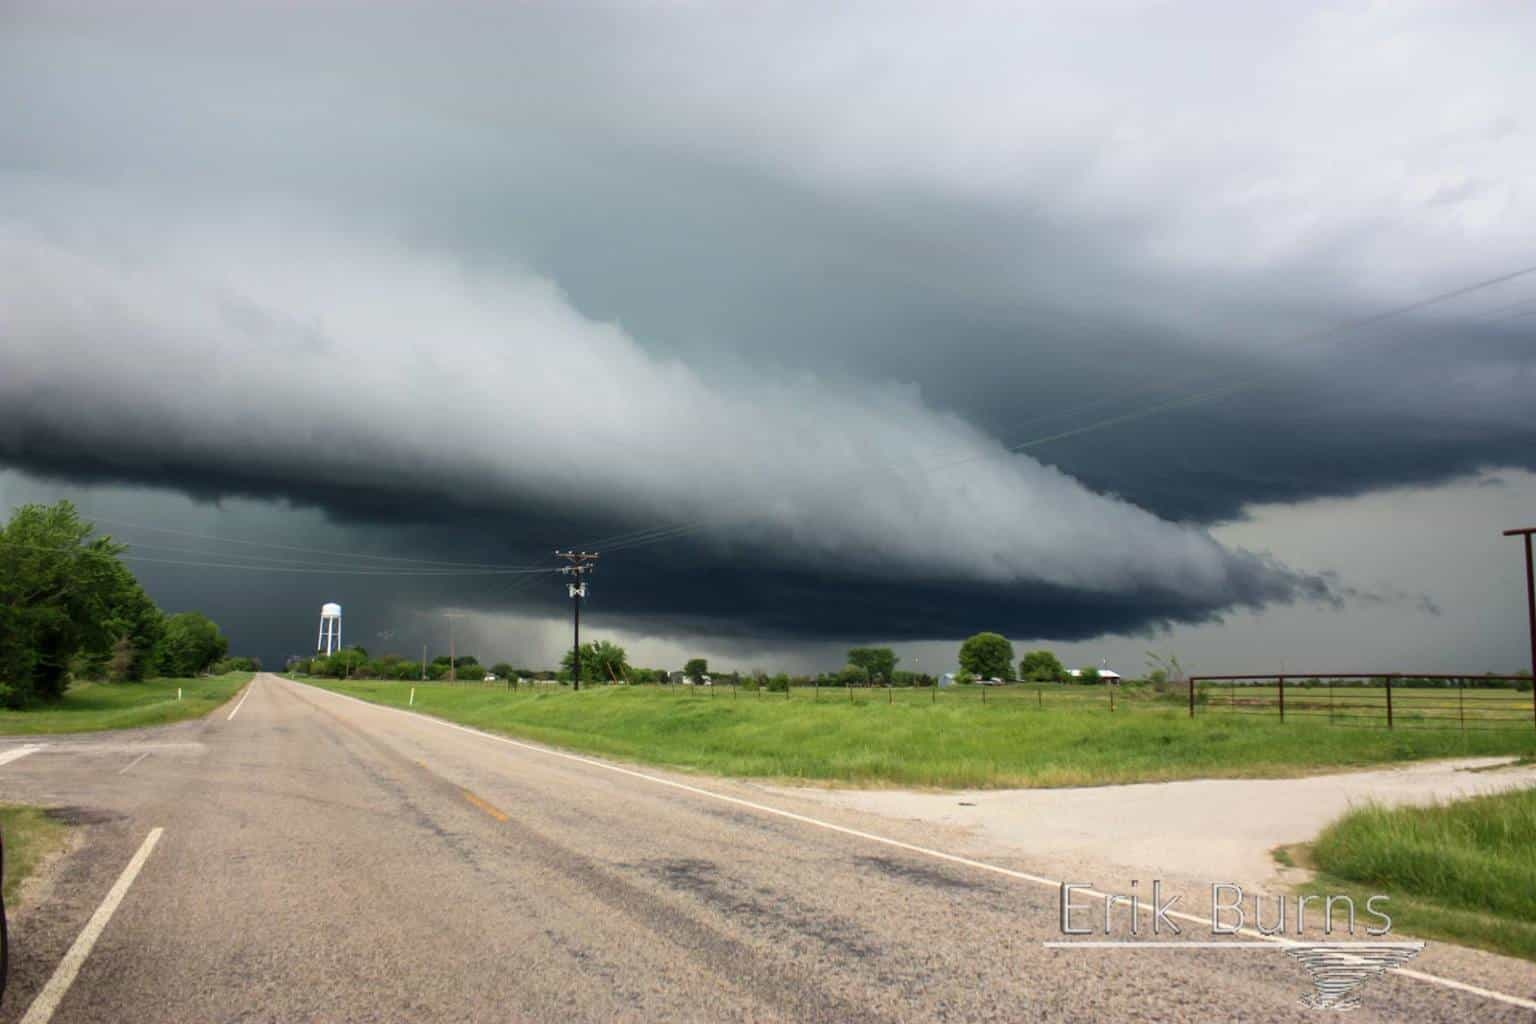 The monster that smashed DFW today. Taken in Wills Point, TX.